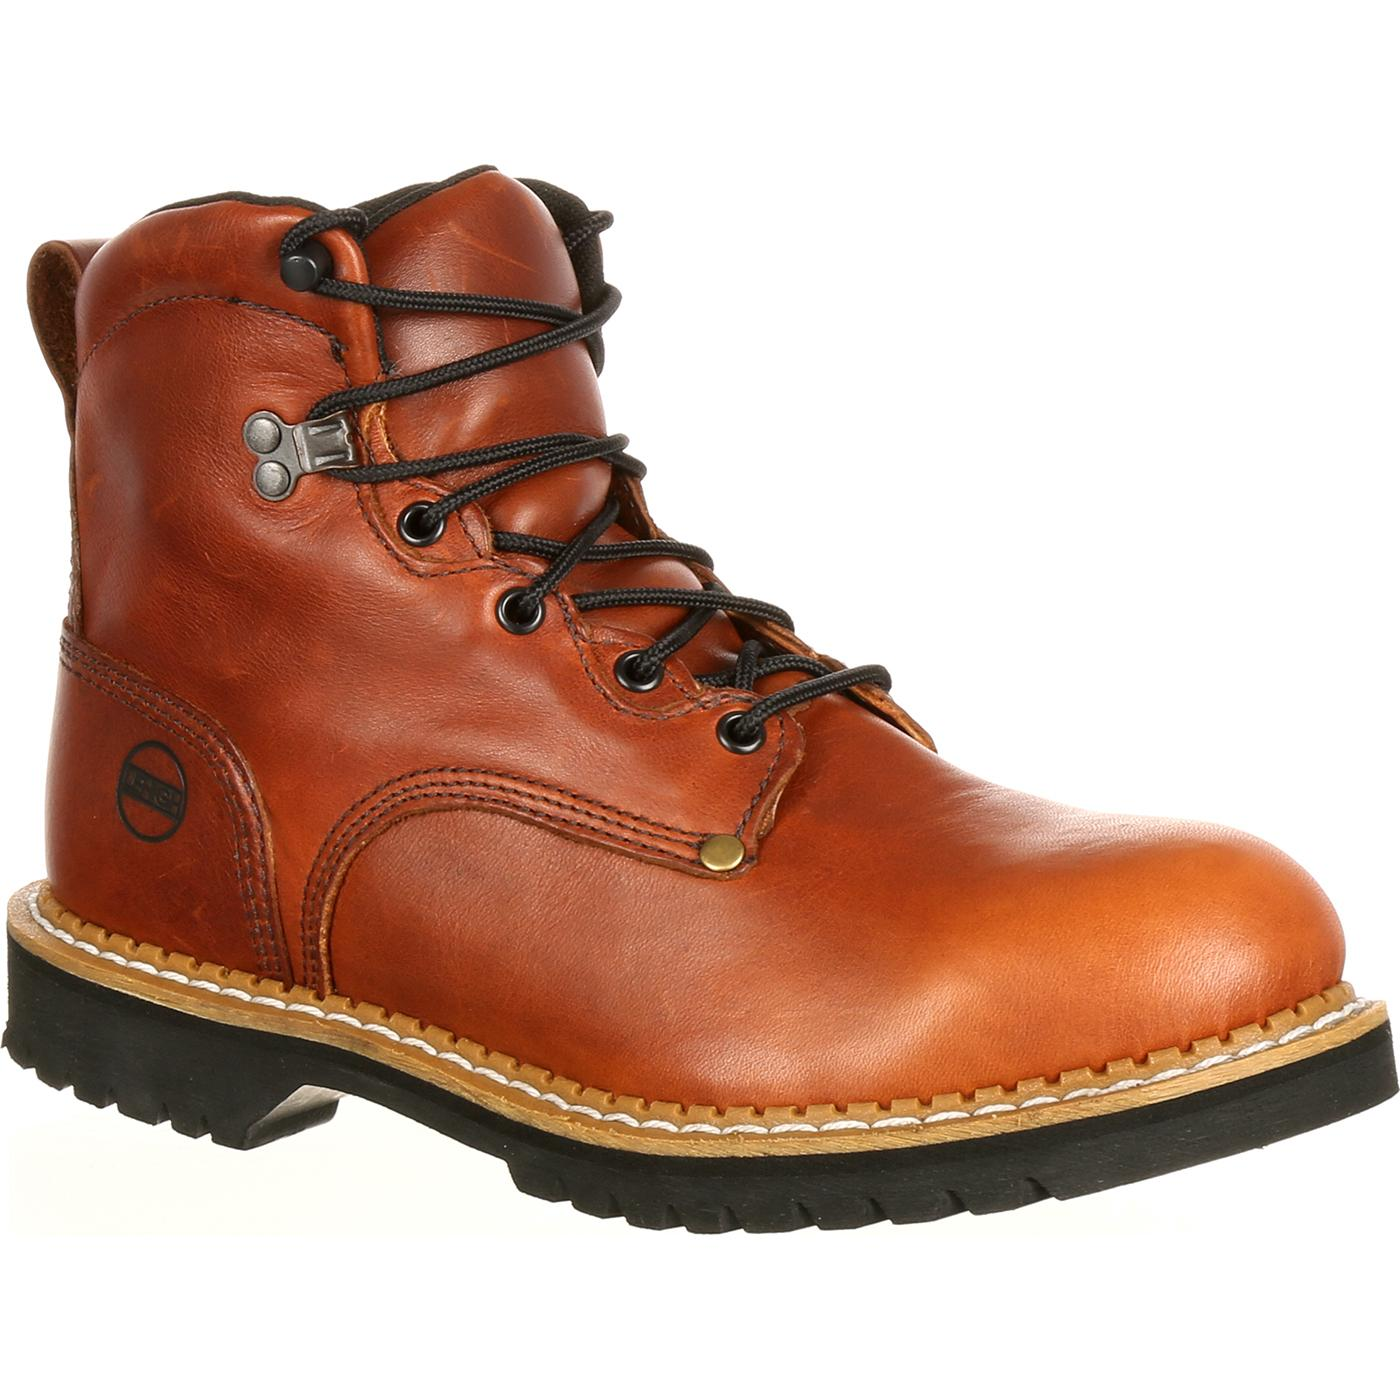 Lehigh Safety Shoes Steel Toe Work Boot L0004